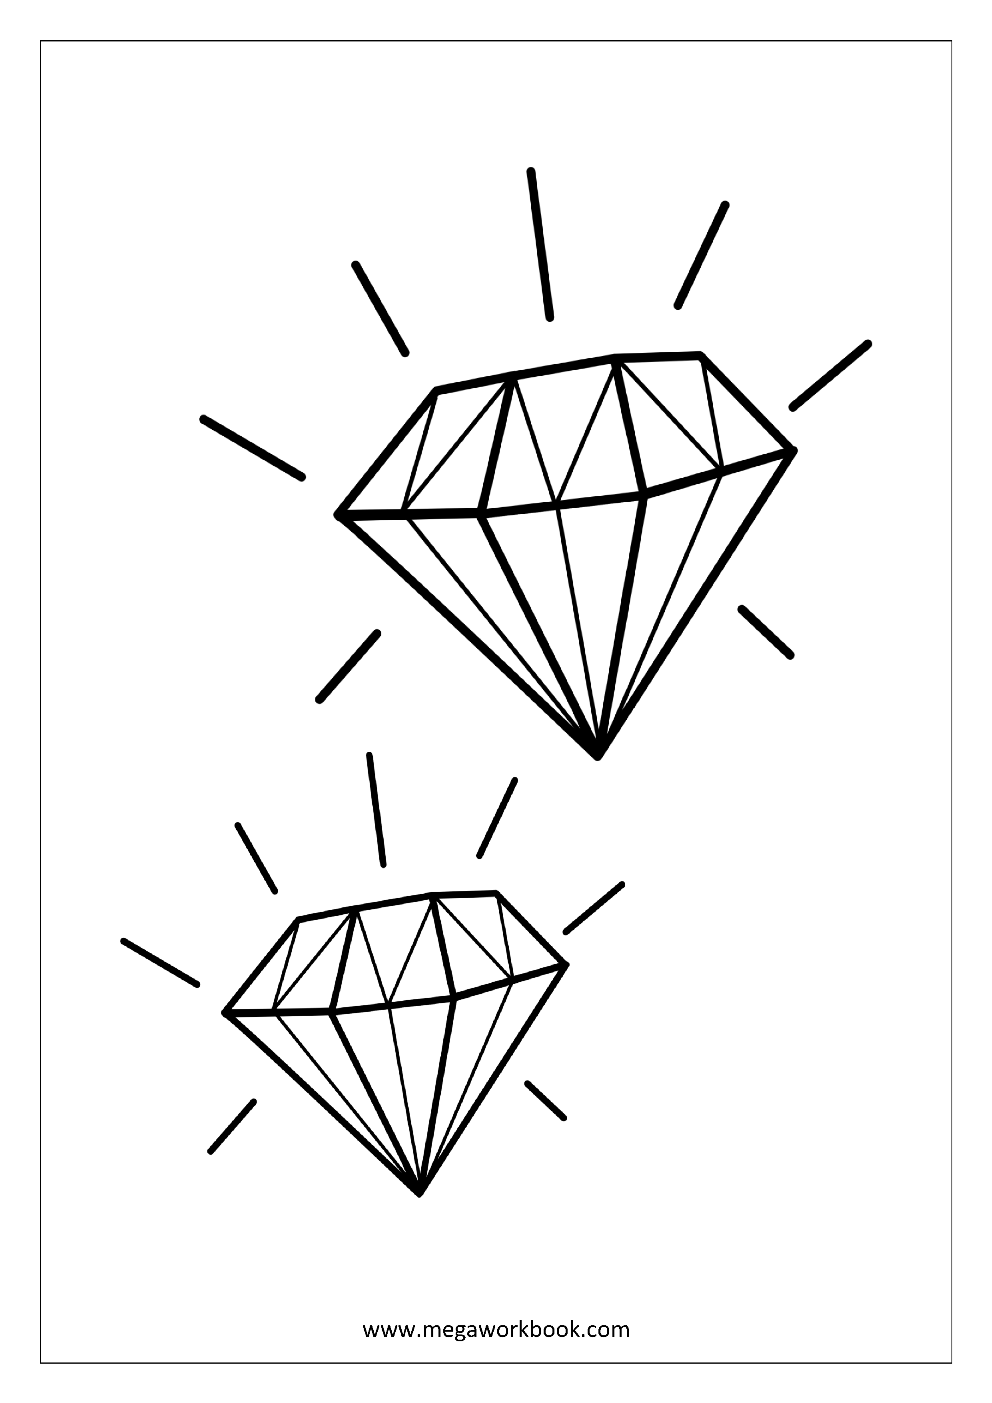 coloring with diamonds free coloring sheets miscellaneous megaworkbook diamonds with coloring